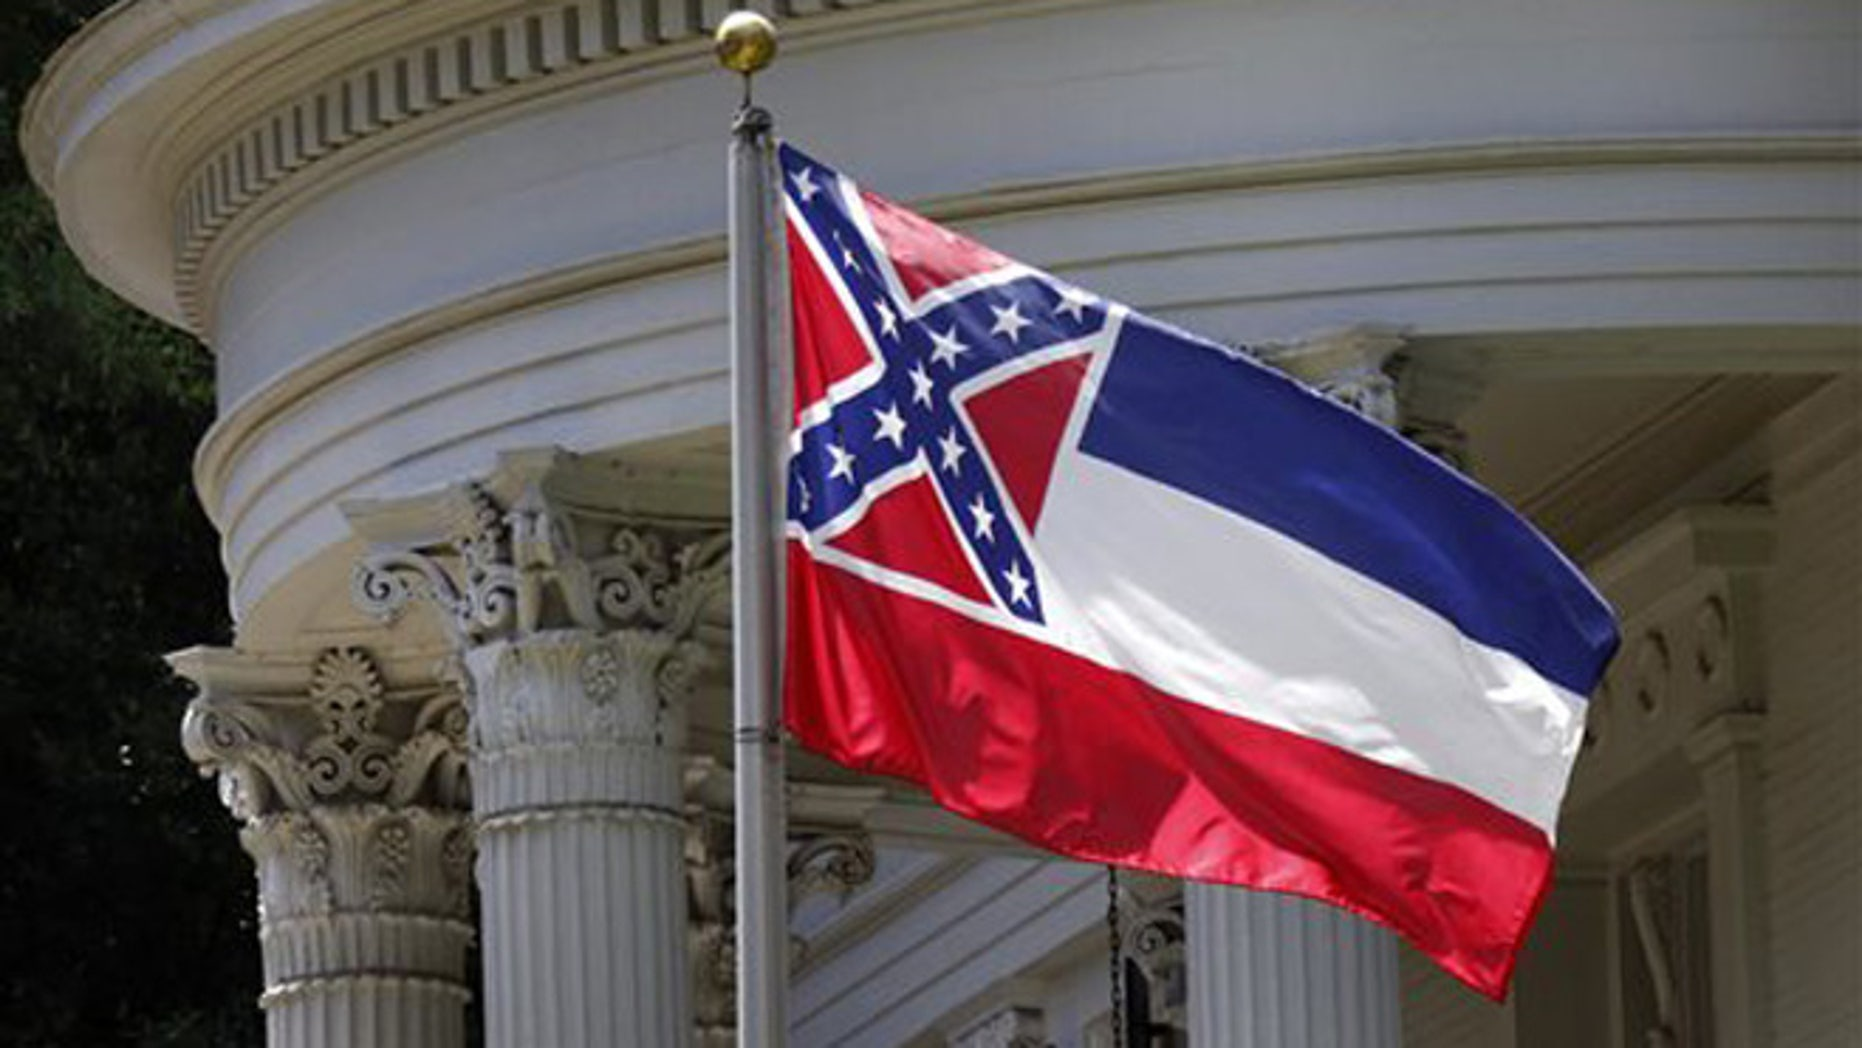 In this photo, the Mississippi state flag is unfurled against the front of the Governor's Mansion in Jackson, Miss.